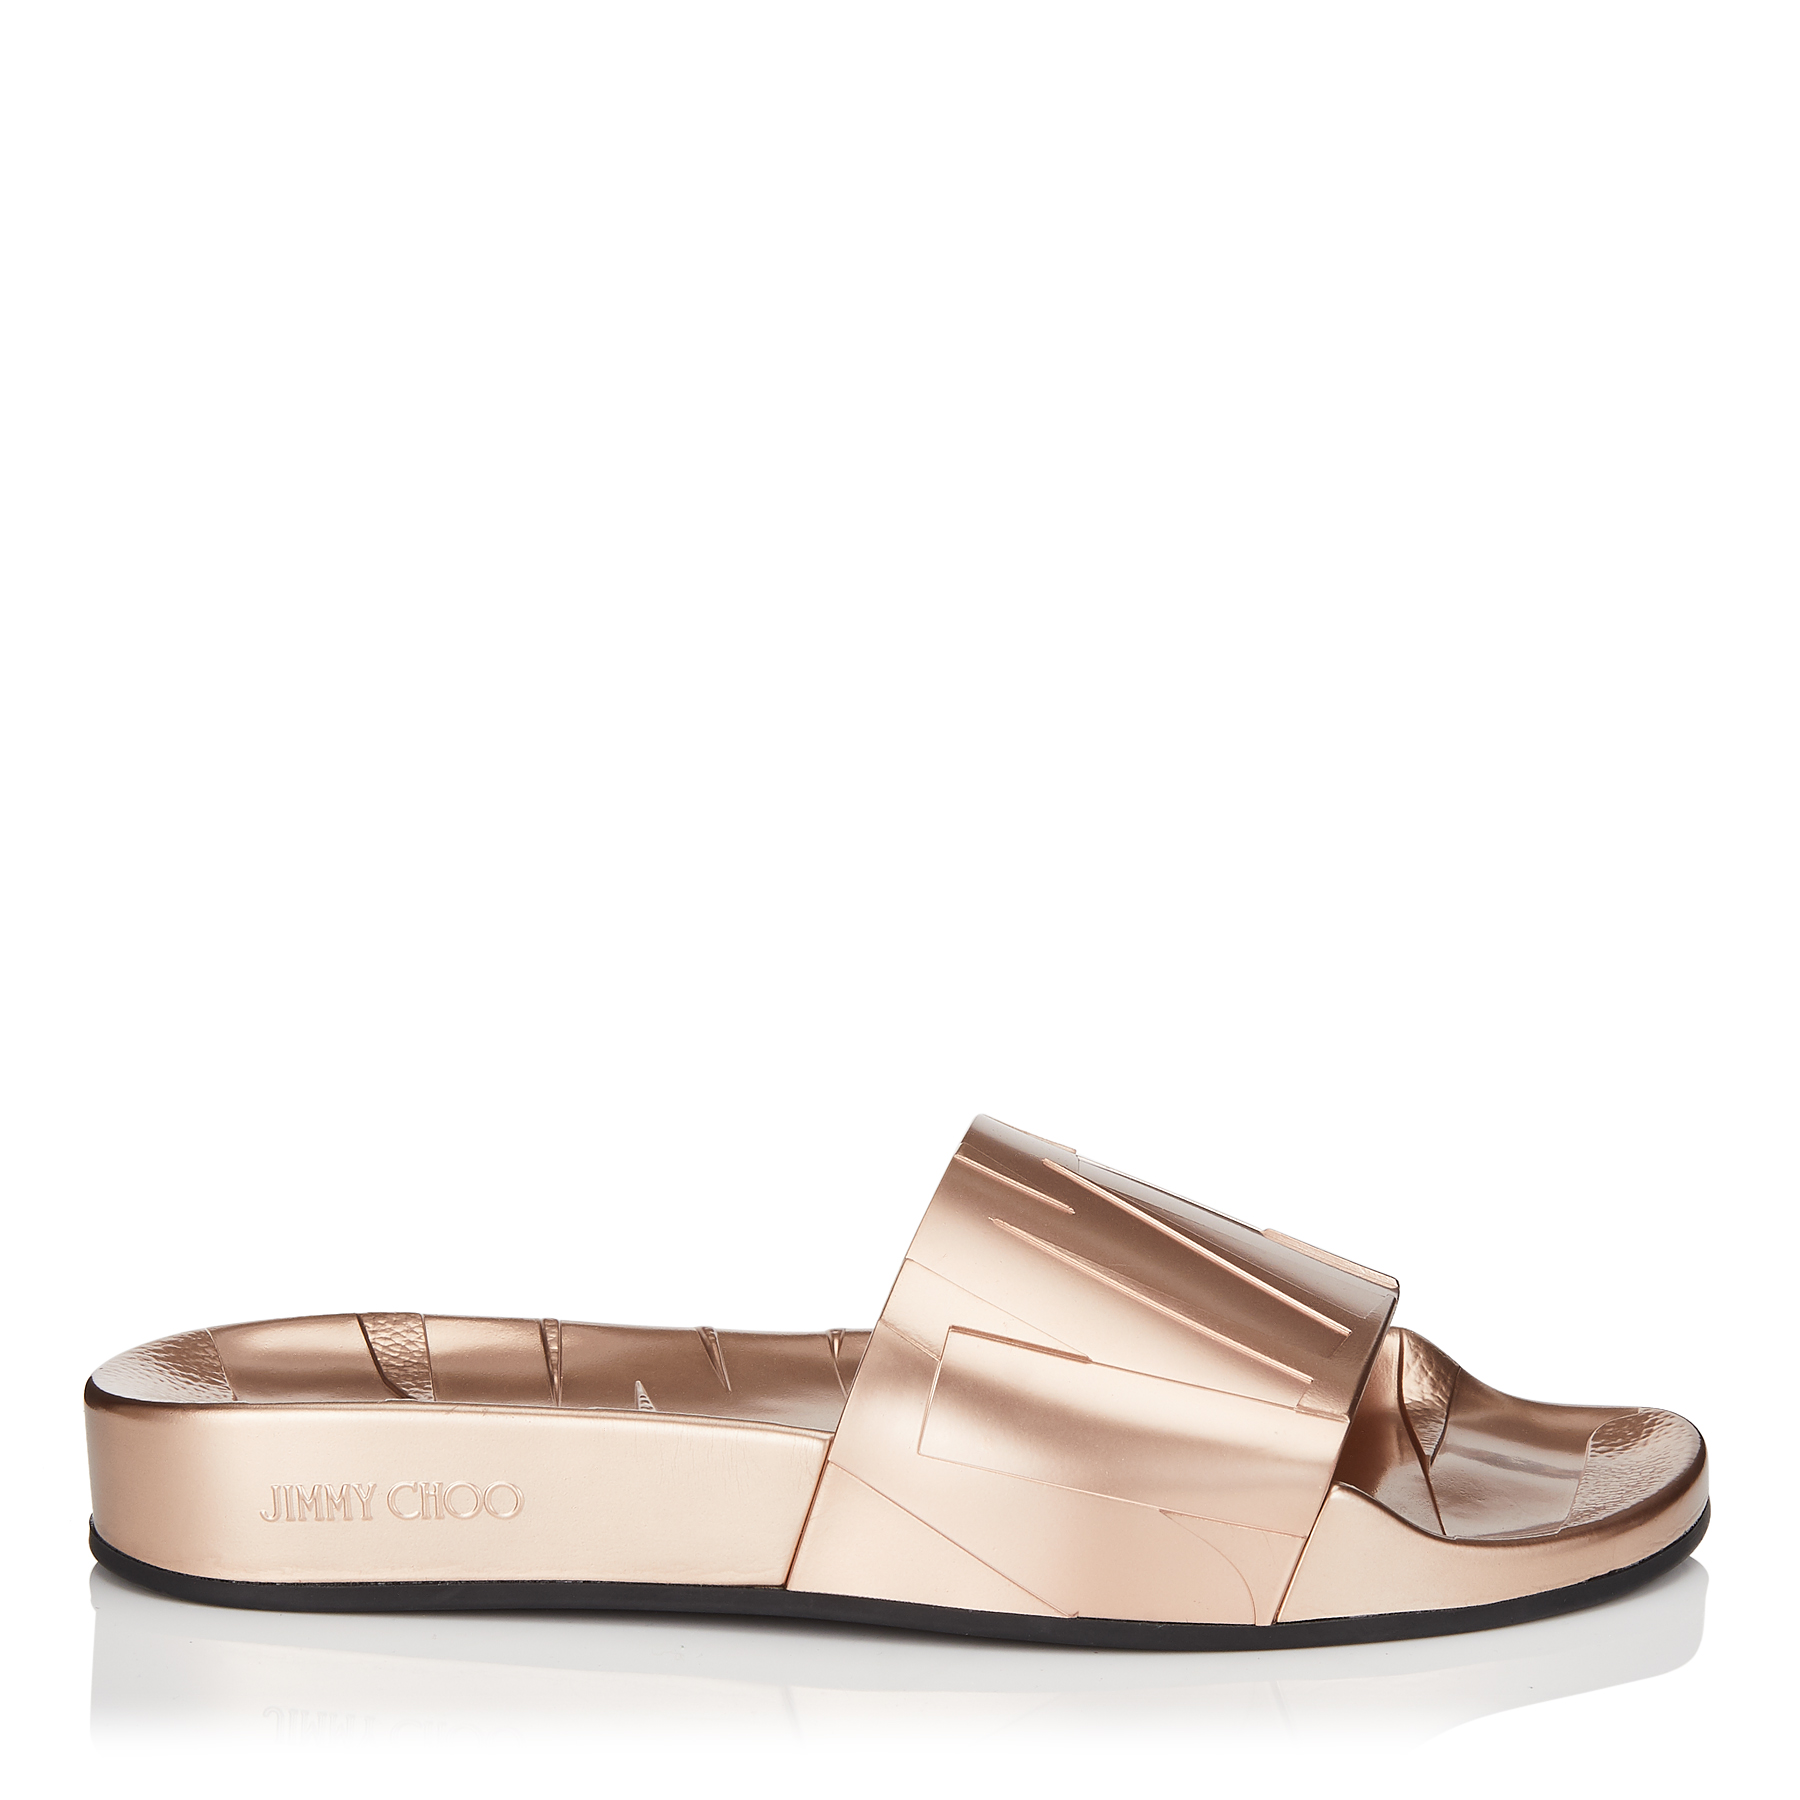 c3aba69bec6f REY F Tea Rose Metallic Rubber Slides by Jimmy Choo